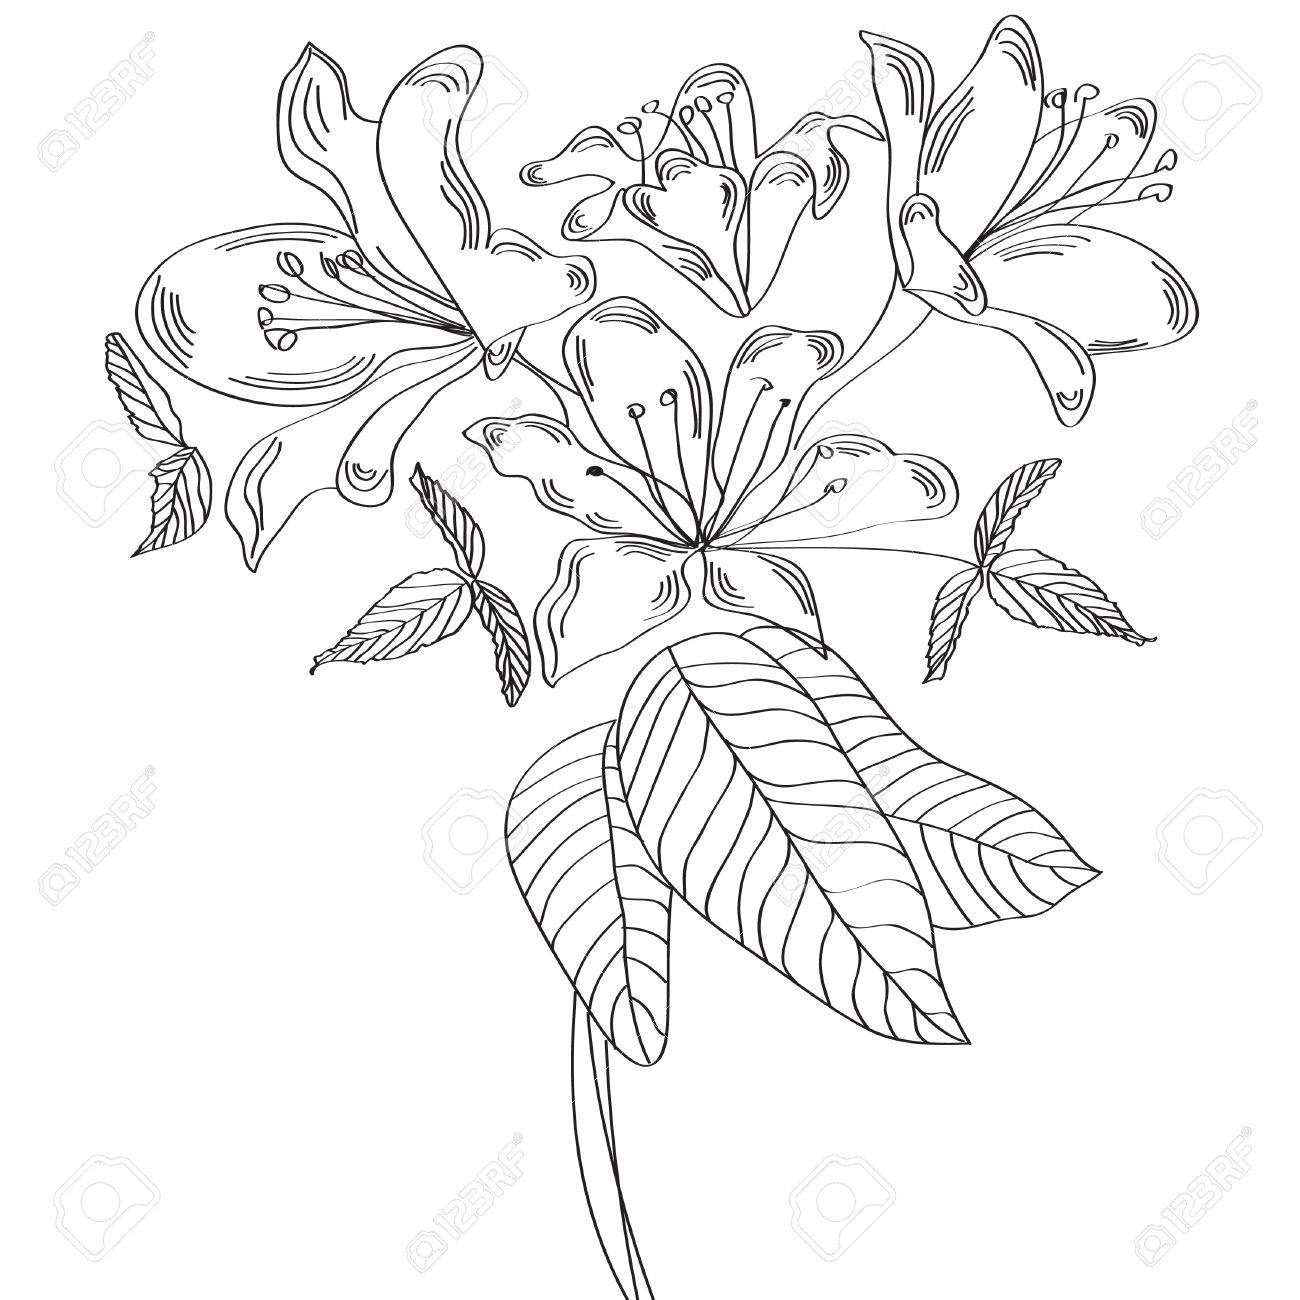 Sketch with lily Stock Vector - 5999049